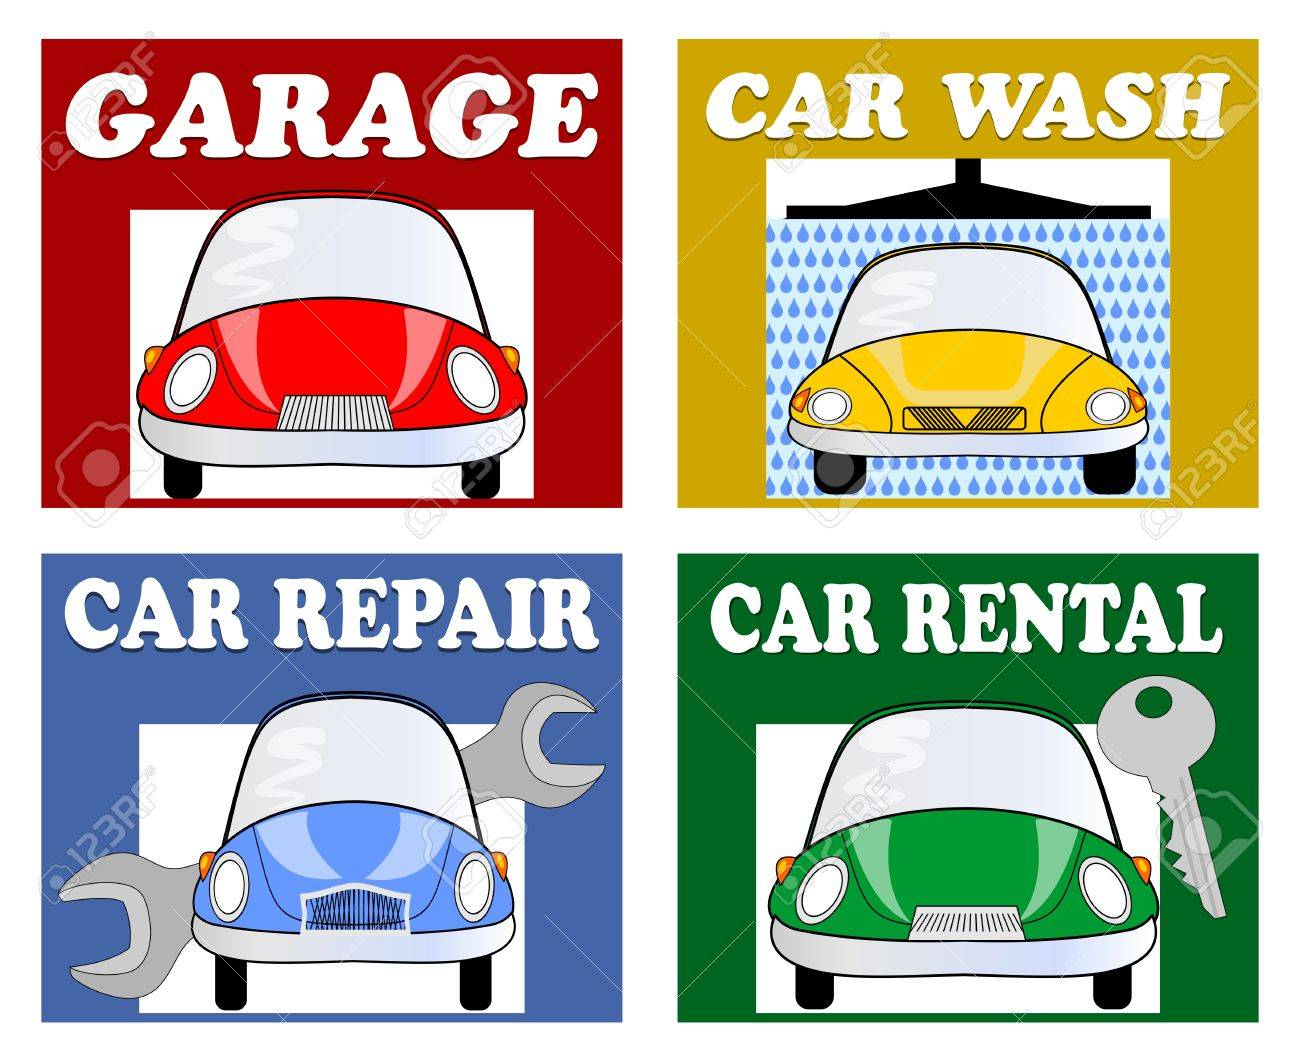 Services For Motorists And Drivers Garage Car Wash Car Repair